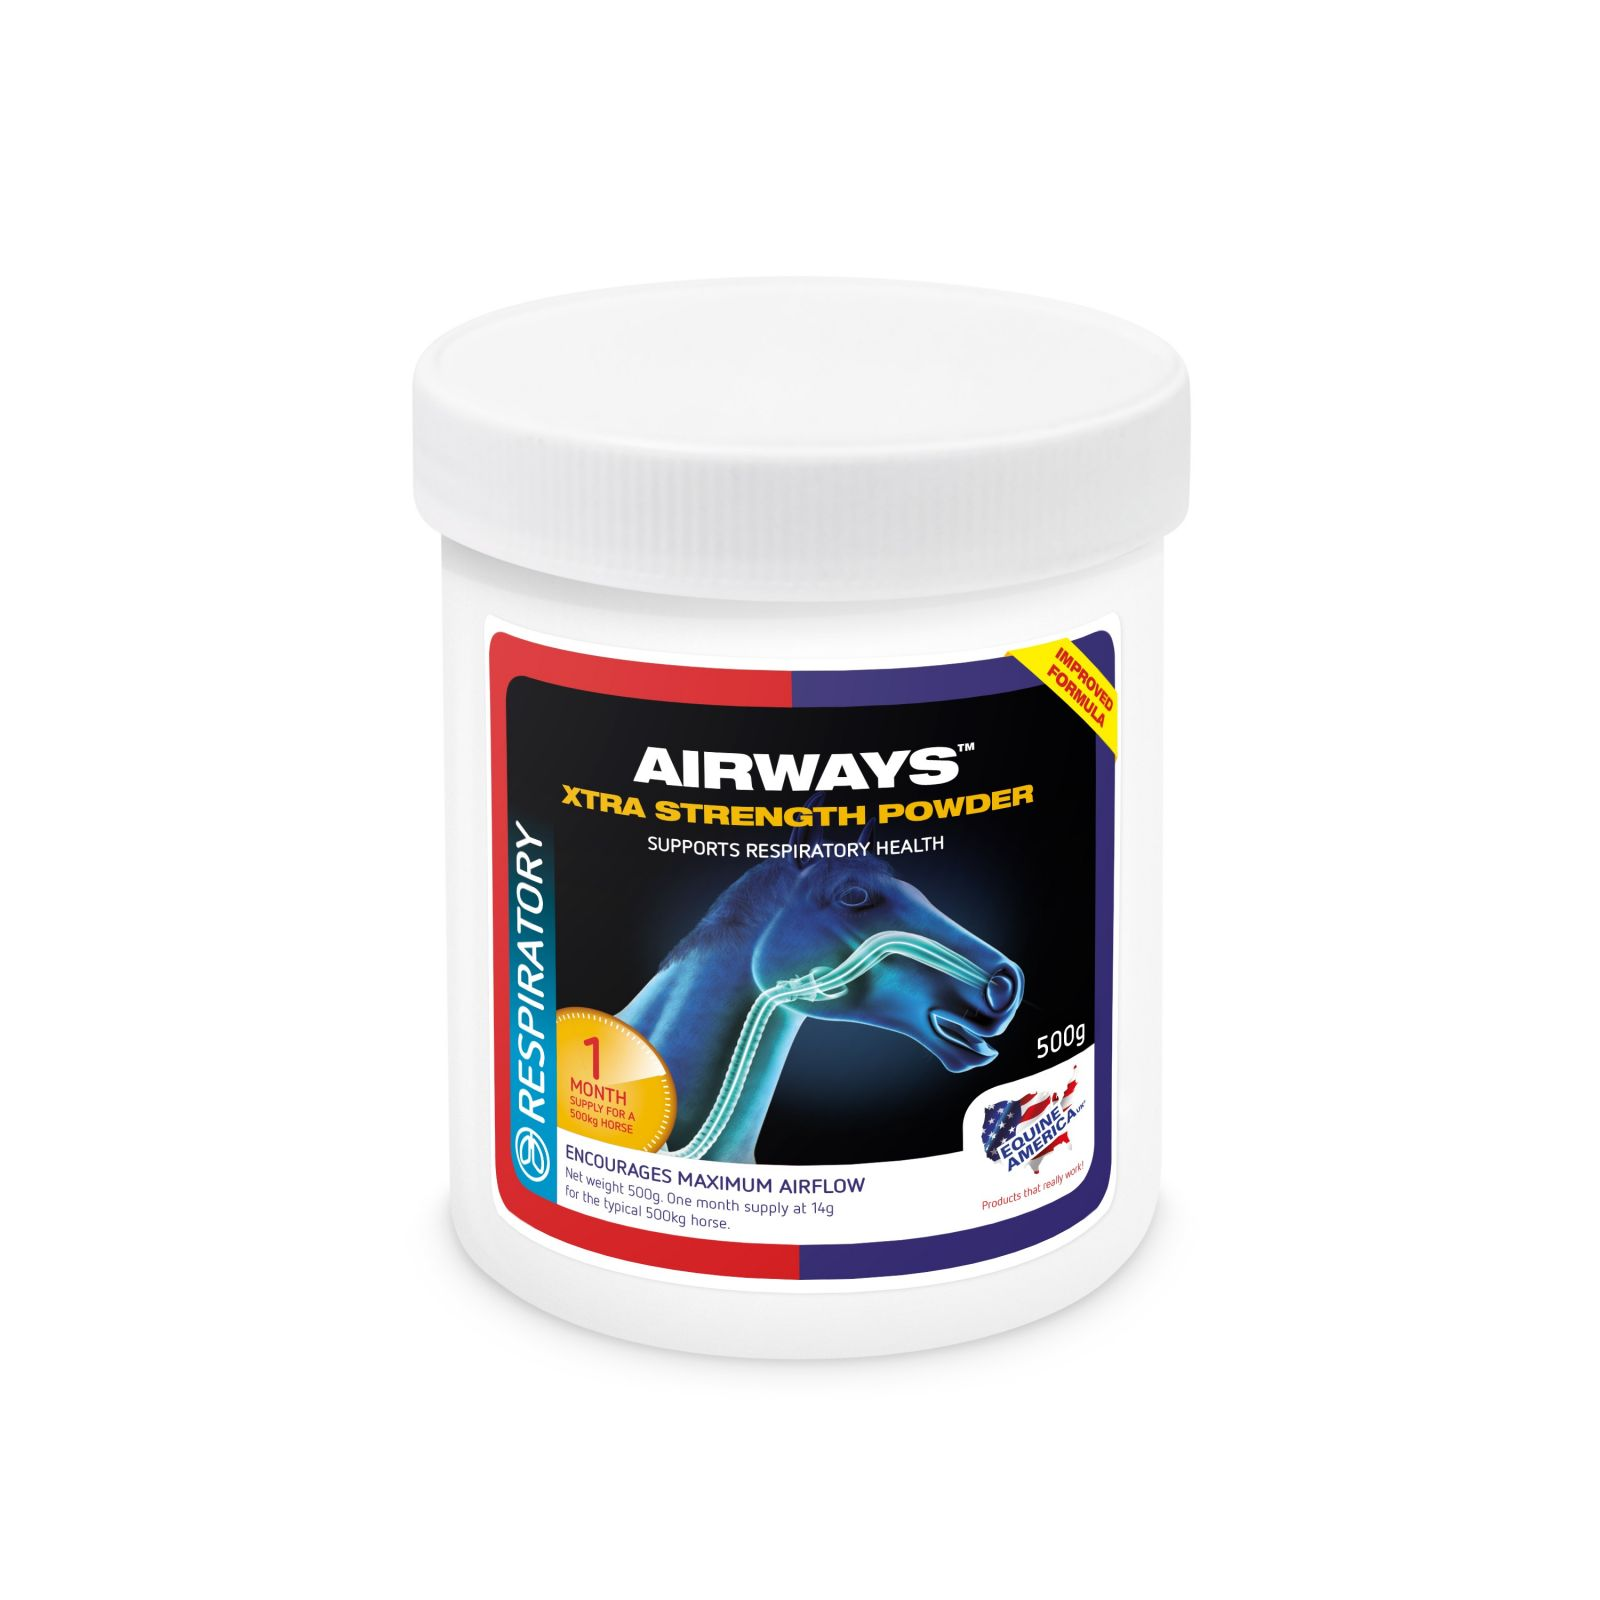 AIRWAYS® XTRA STRENGTH